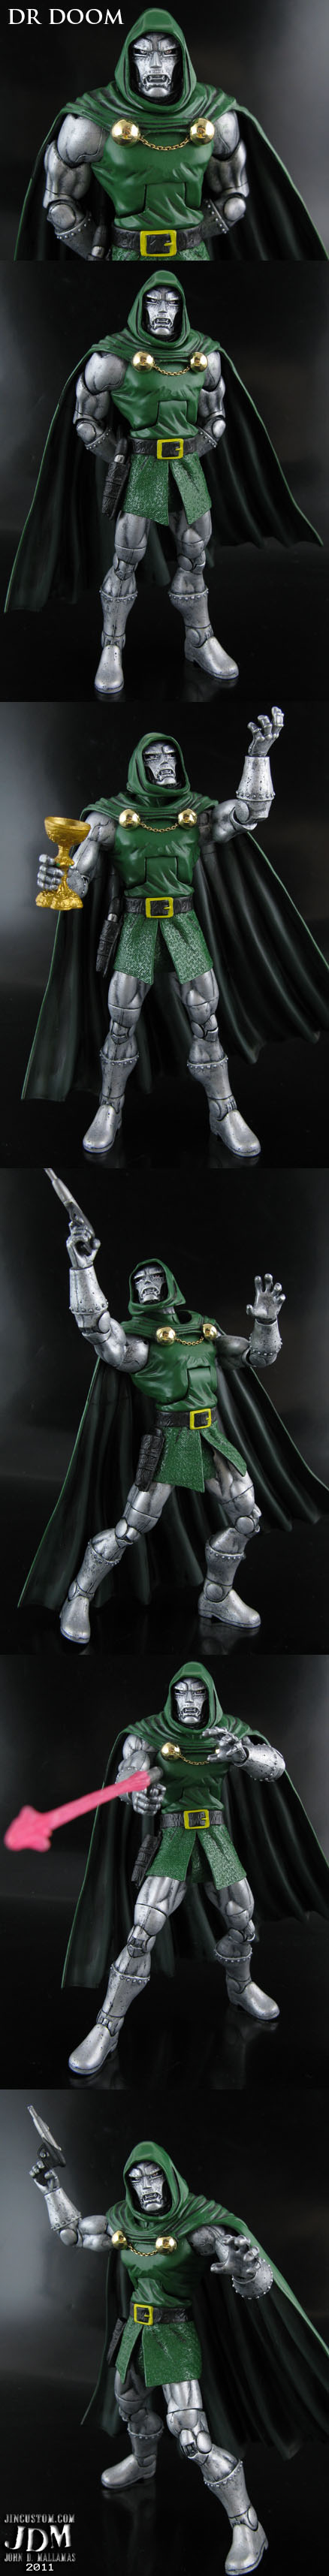 Custom Dr Doom